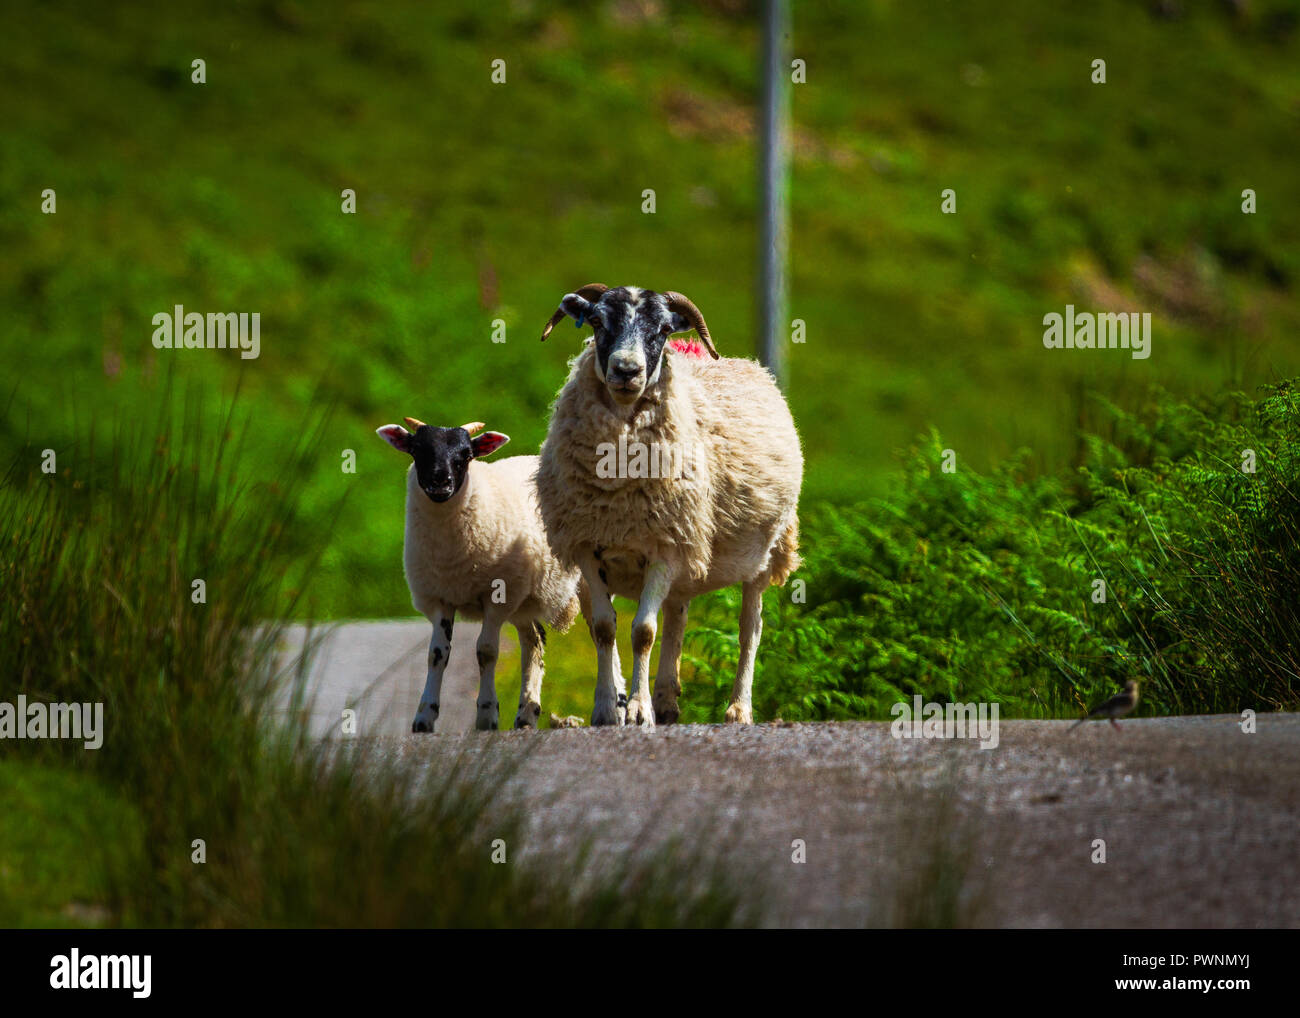 Sheep out on a Scottish Highland Road - Stock Image